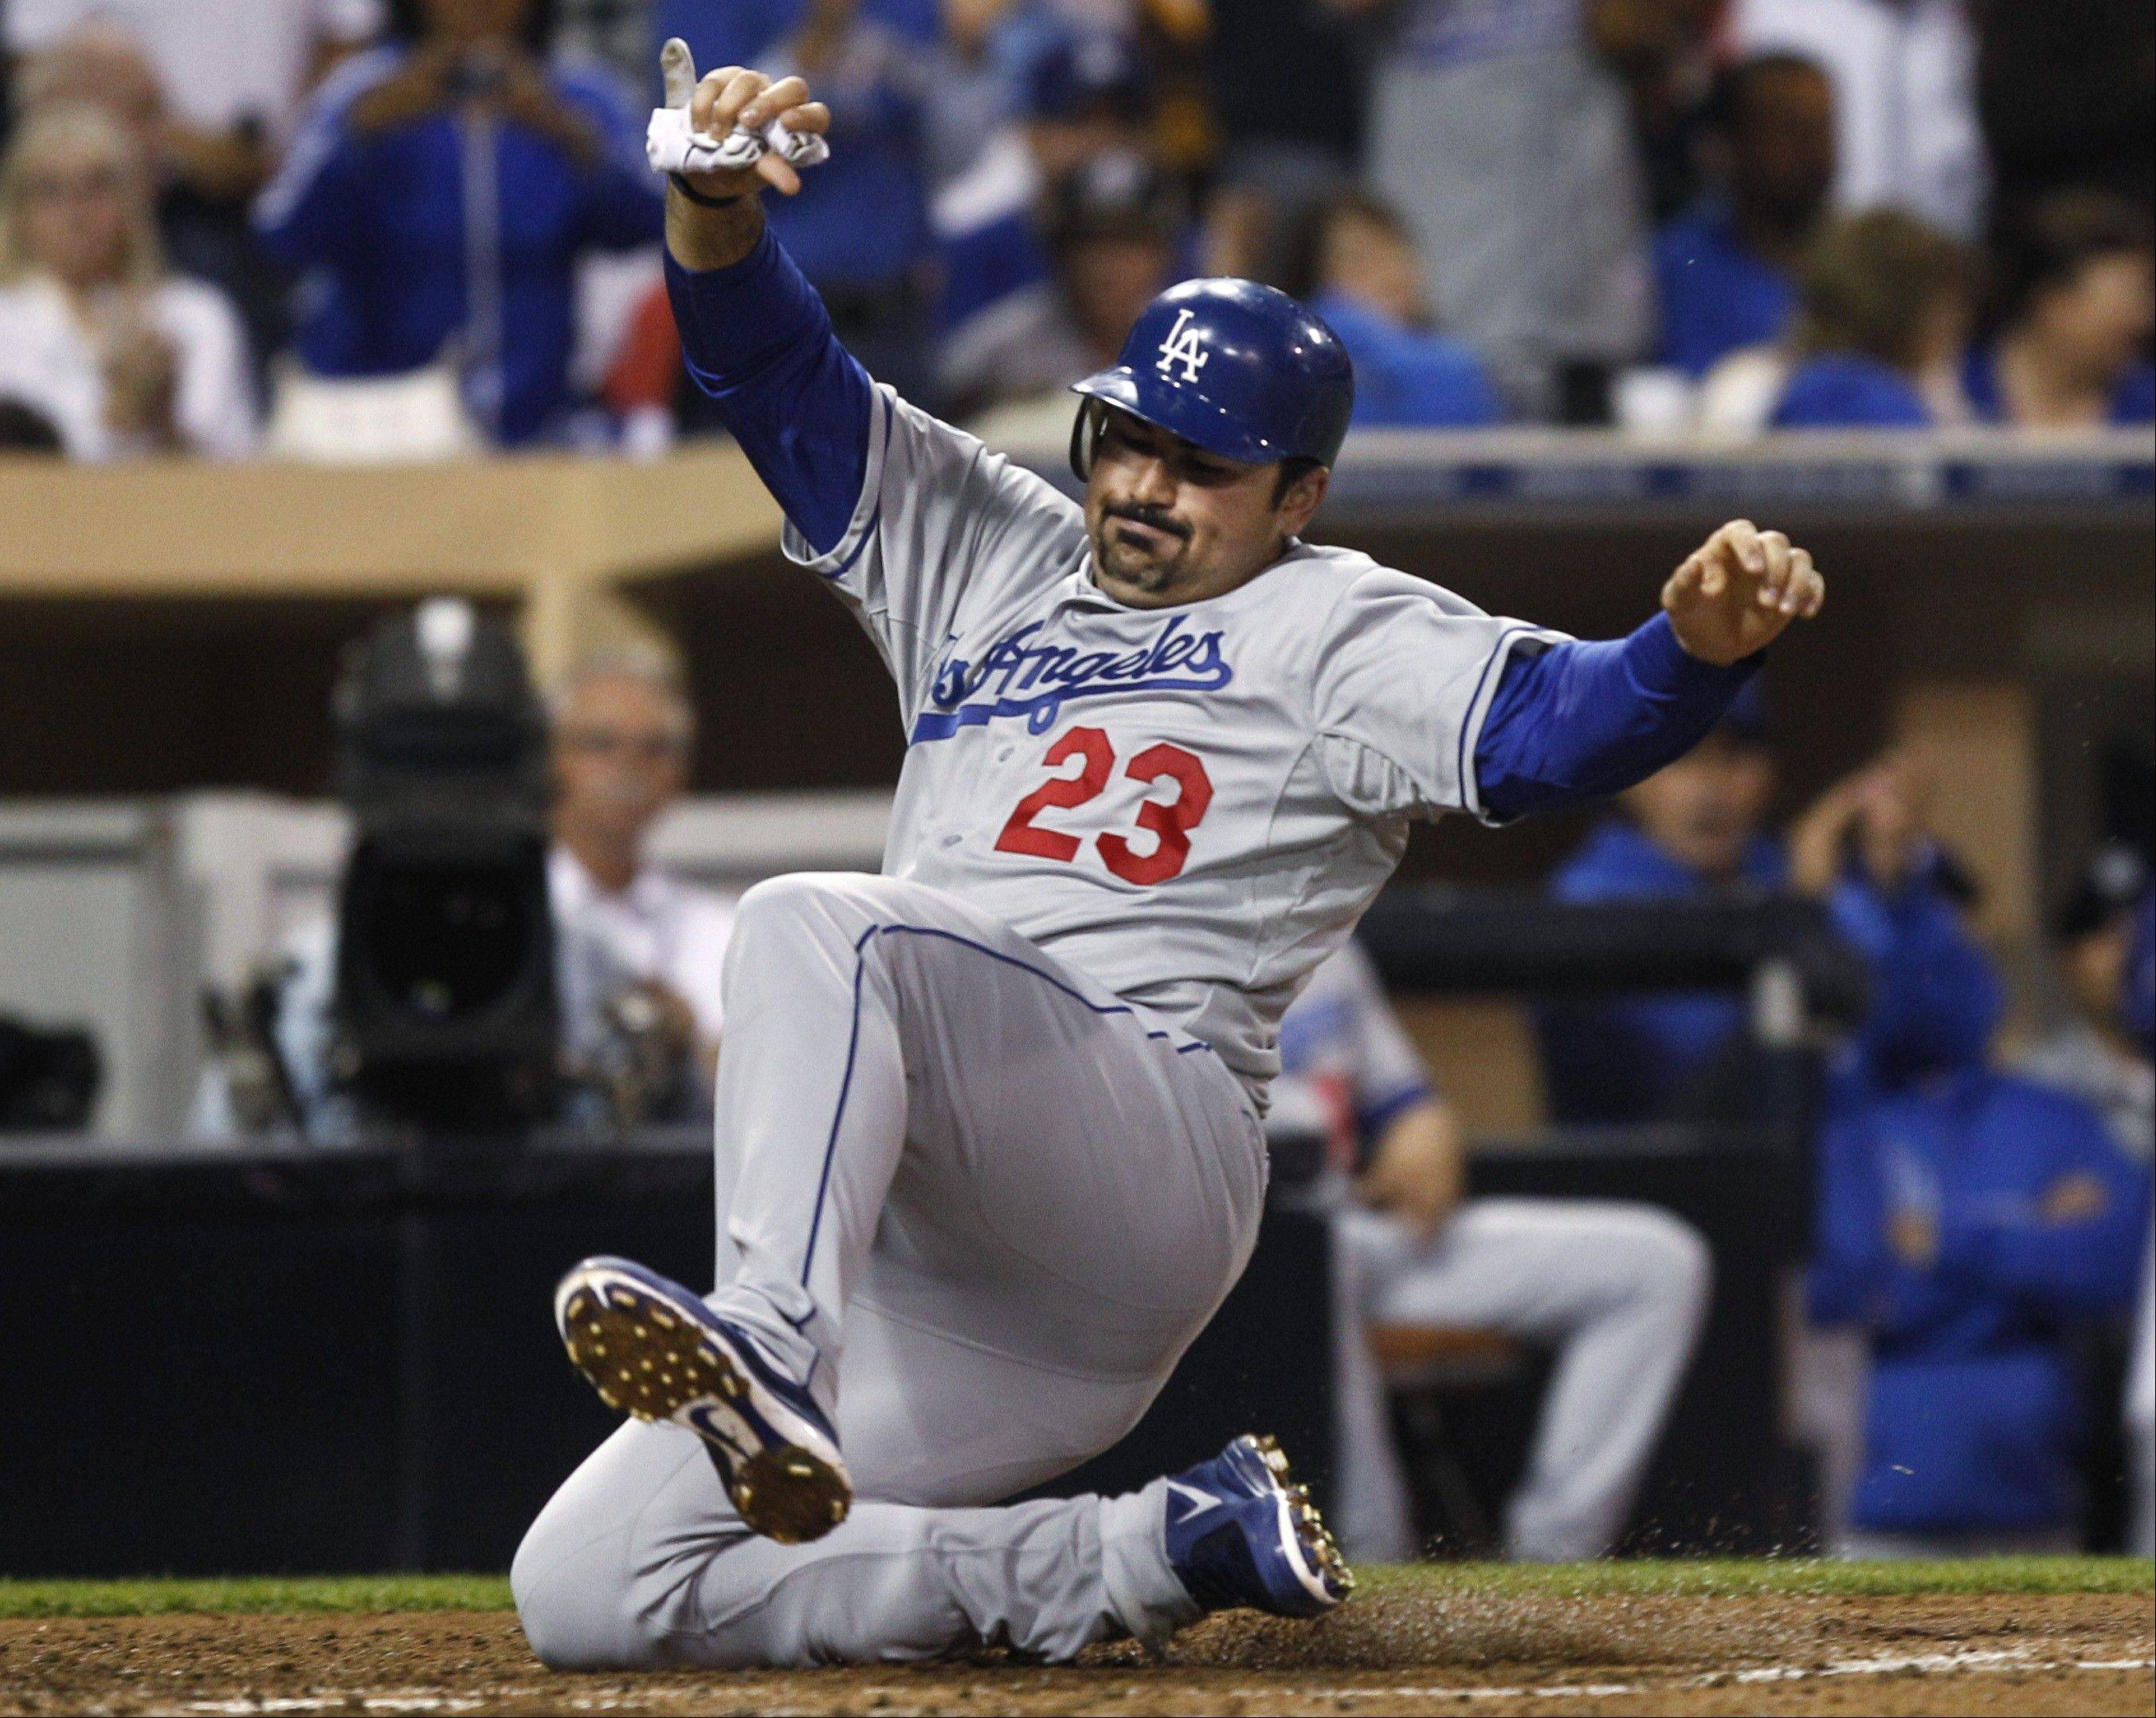 The Dodgers' Adrian Gonzalez scores on a single by A.J. Ellis during the fourth inning Thursday in San Diego.